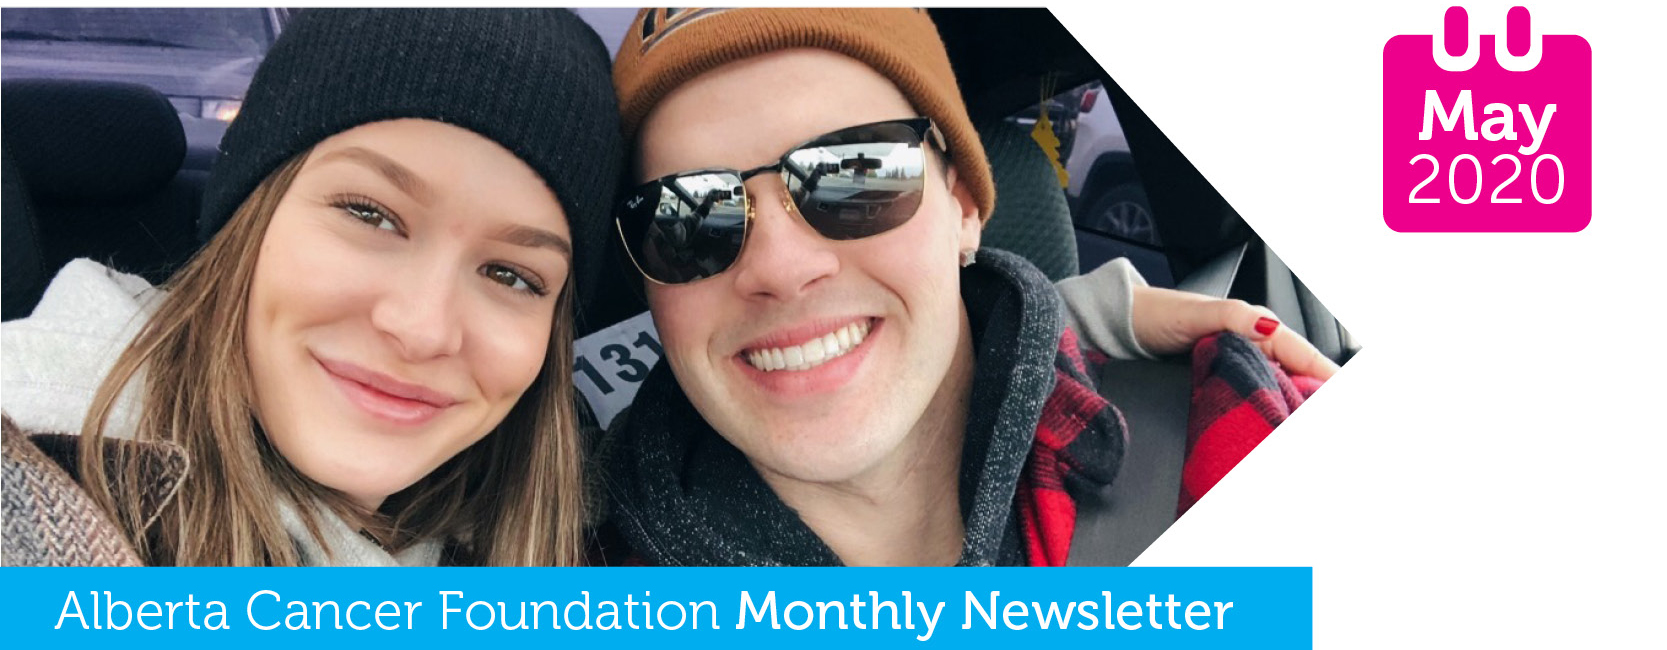 Alberta Cancer Foundation Monthly News - May 2020